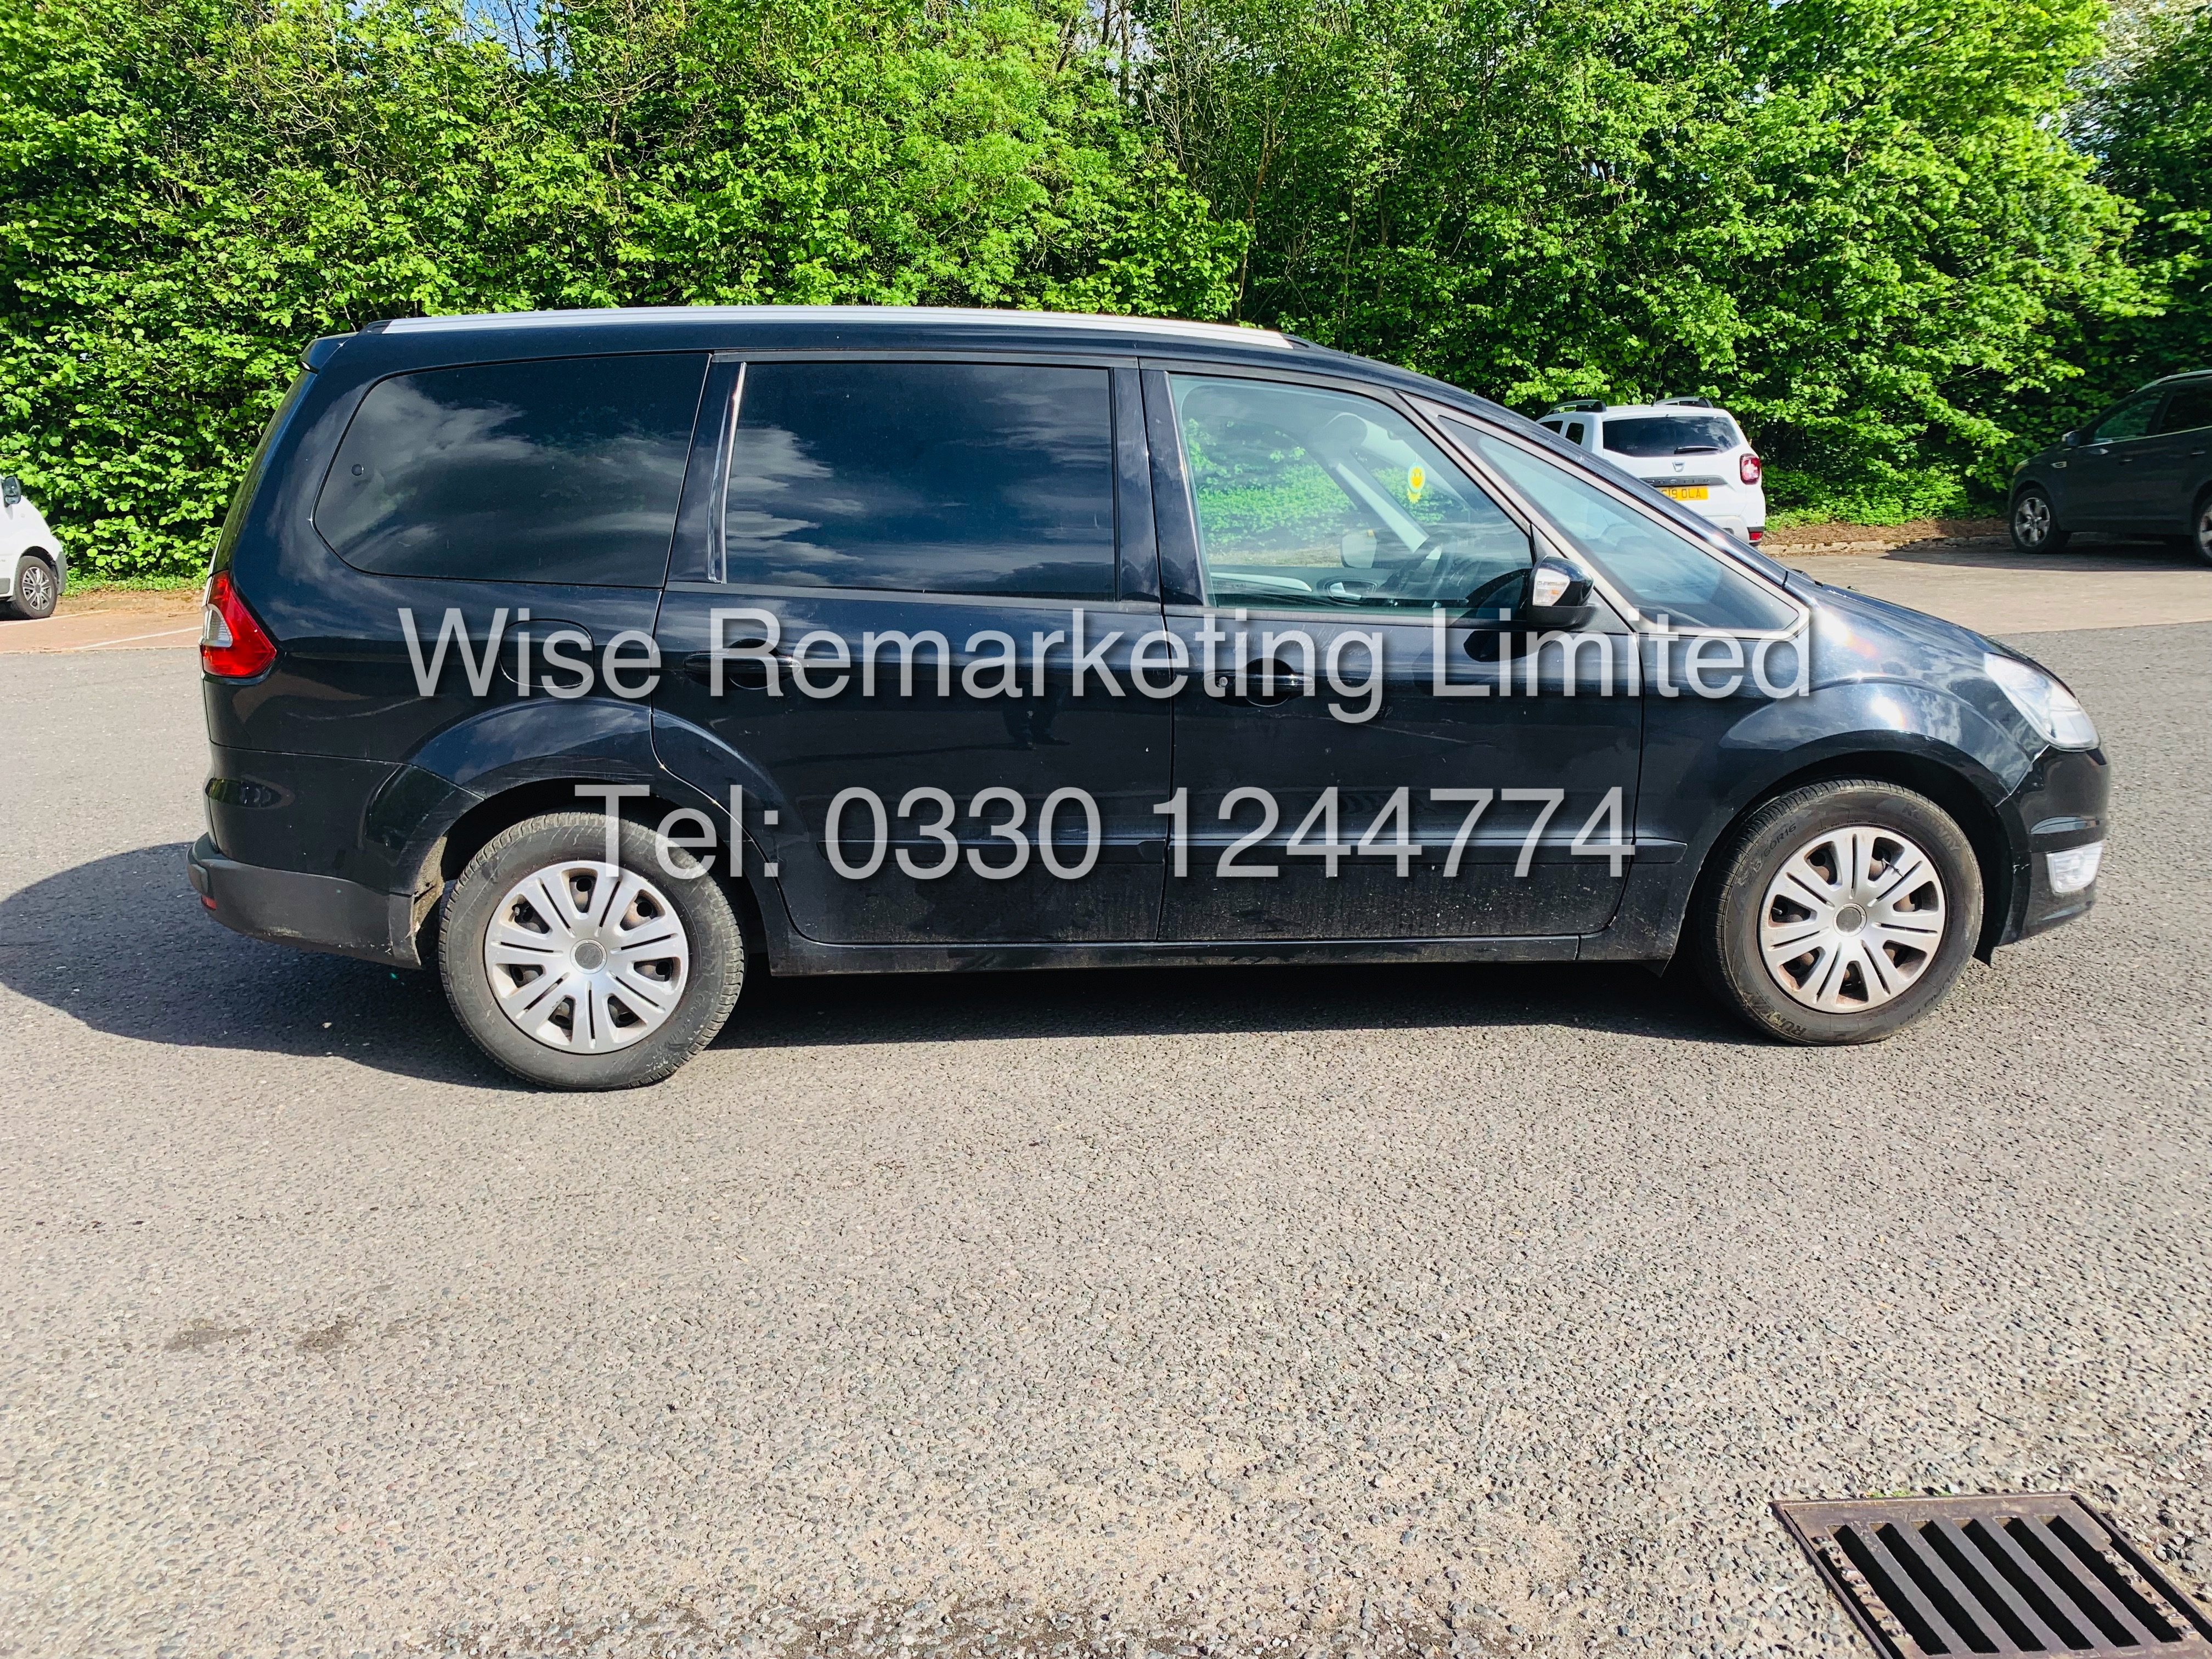 FORD GALAXY ZETEC 2.0L TDCI AUTO 7 SEATER MPV 63 REG *1 OWNER* - Image 7 of 18